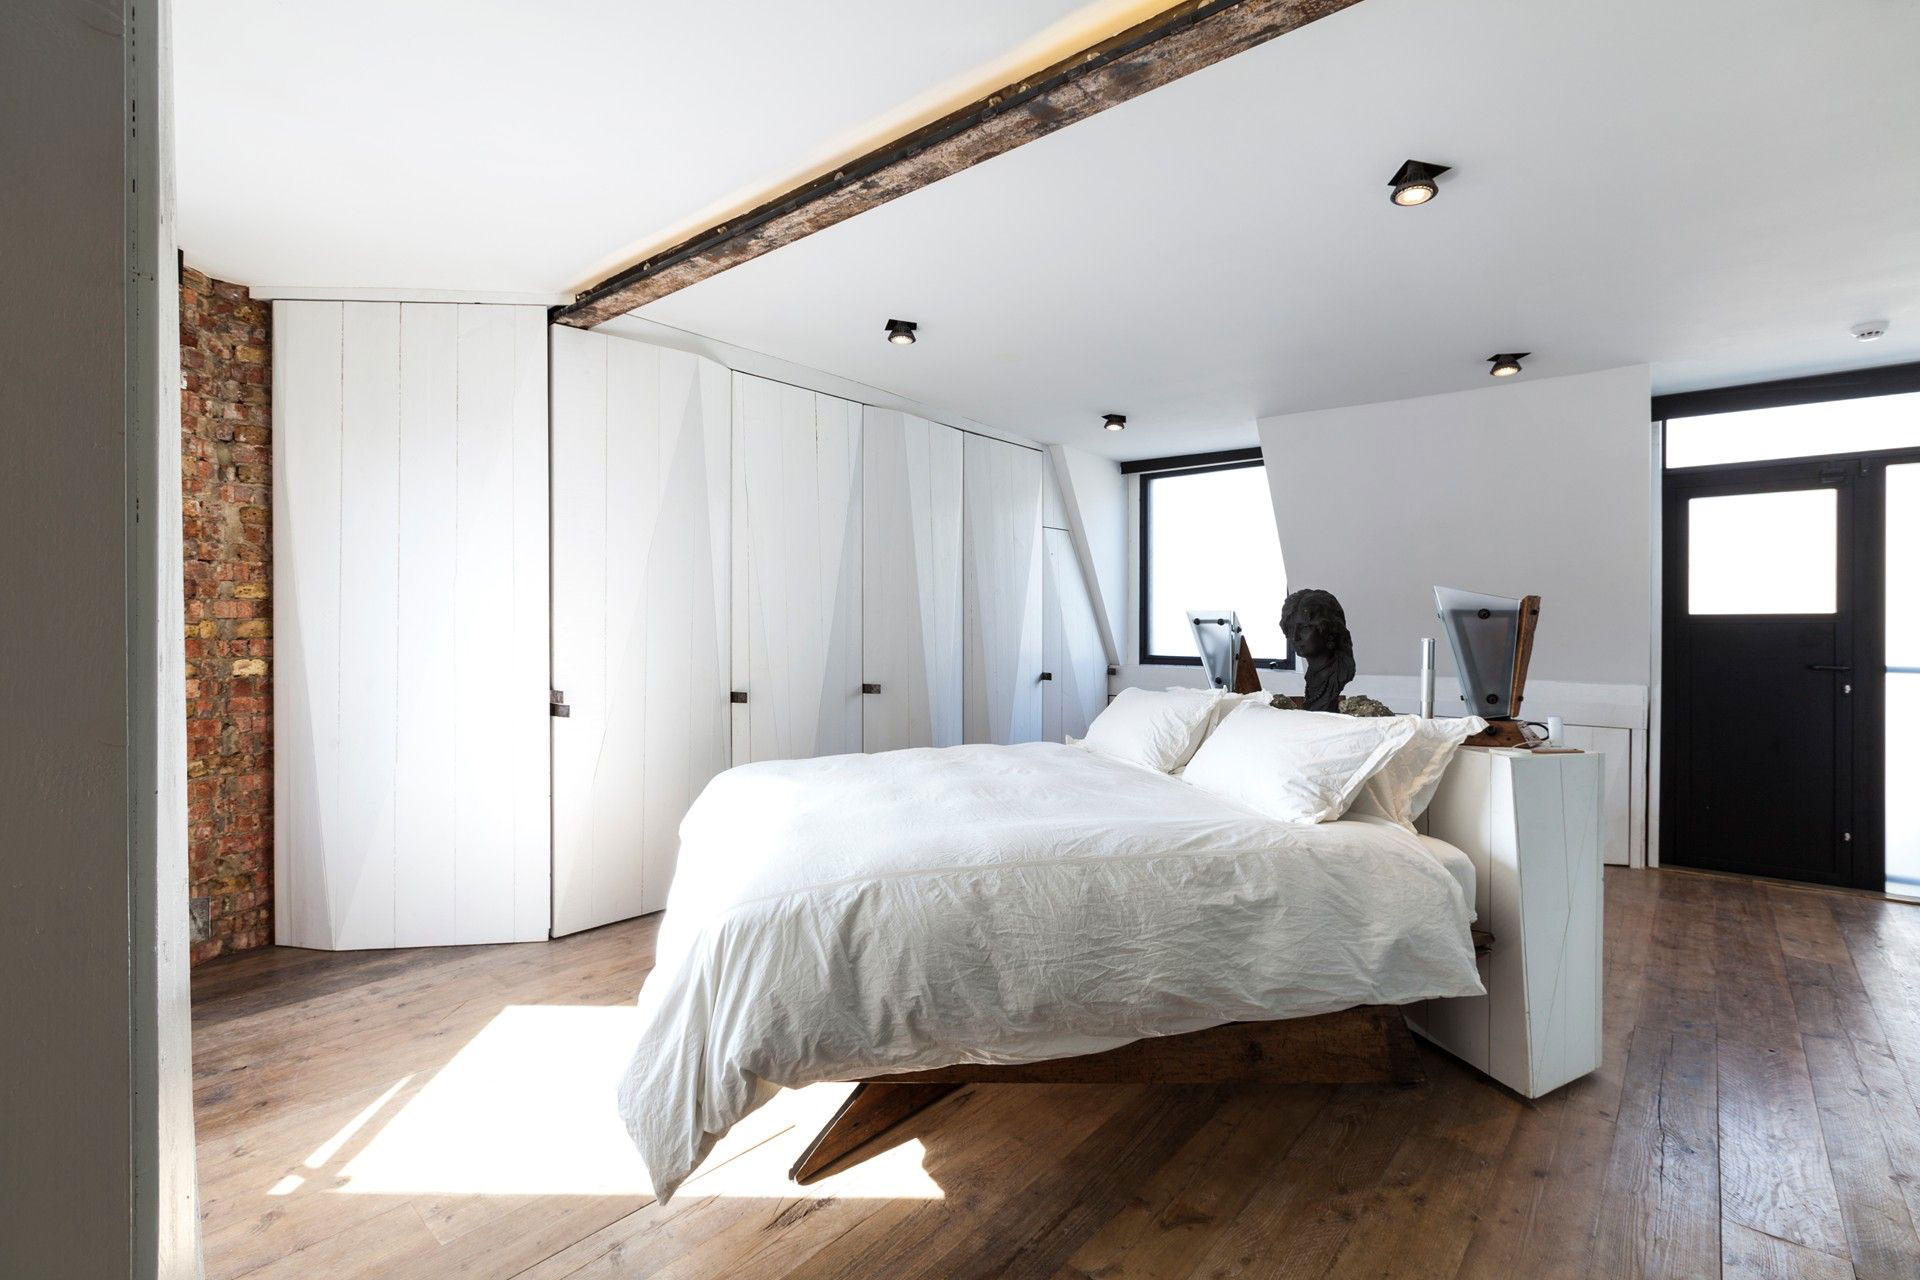 Bedroom, Wood Flooring, Archer Street Apartment in London, England